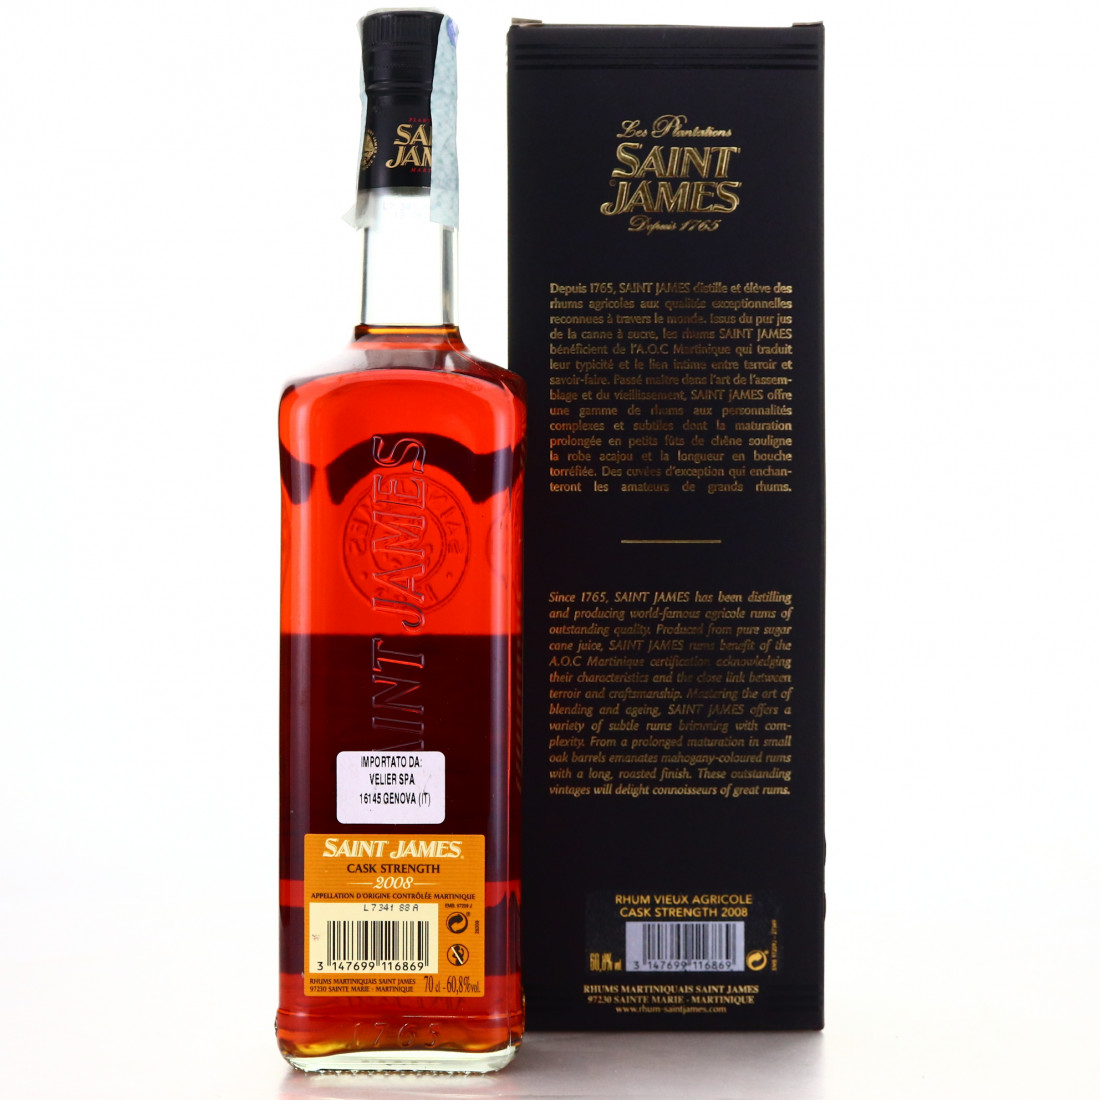 Saint James 2008 Cask Strength / Velier 70th Anniversary